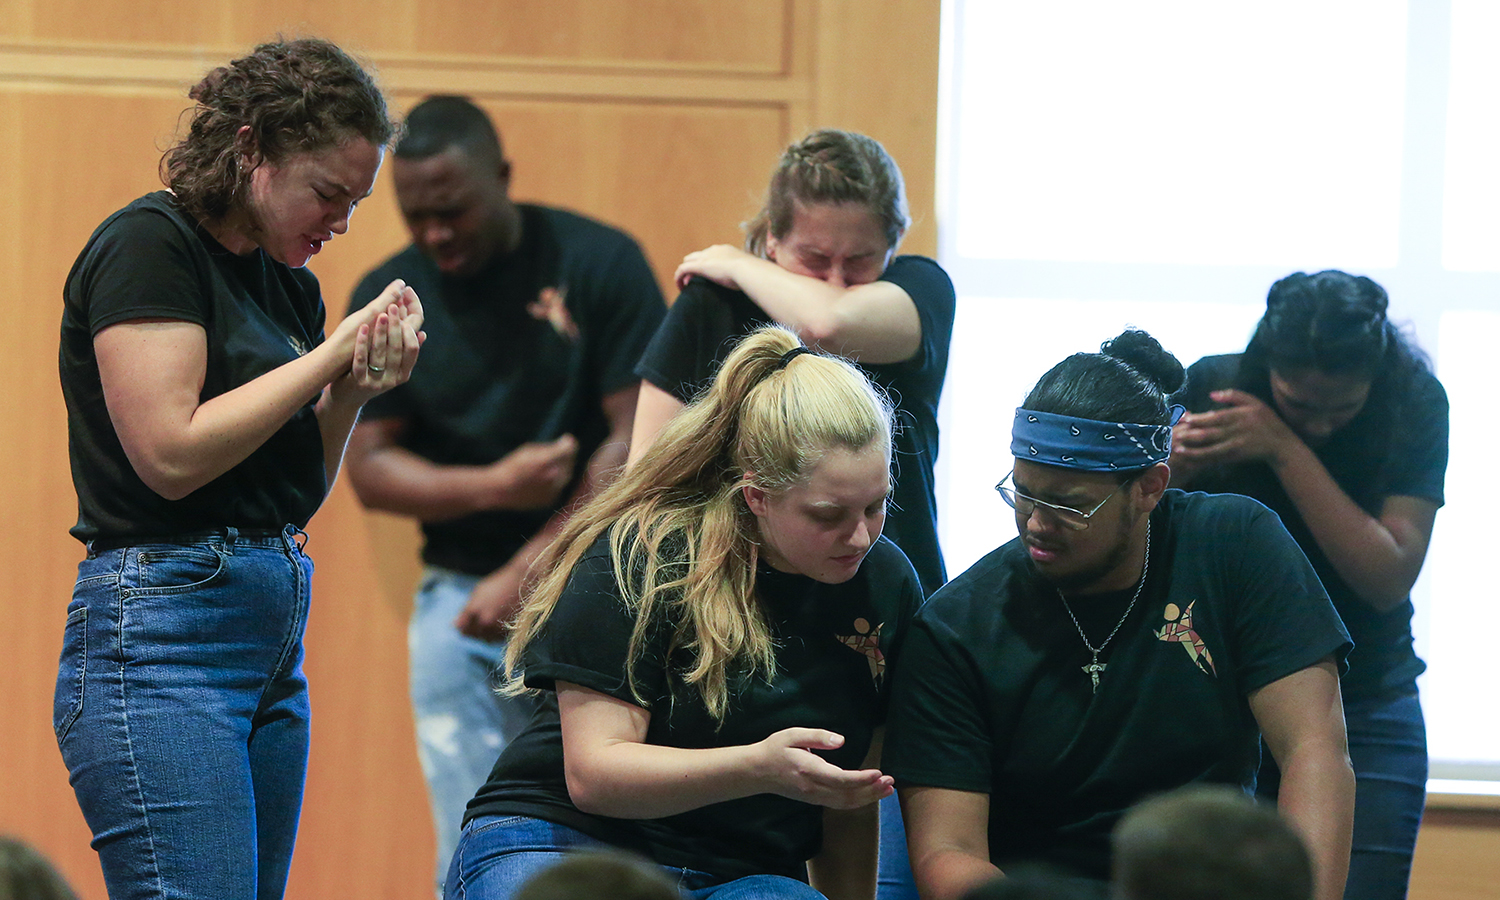 Members of Mosaic NY, the social justice theatre company, perform a series of plays for first-years advising students on how to deal with the social and academic pressures of college.